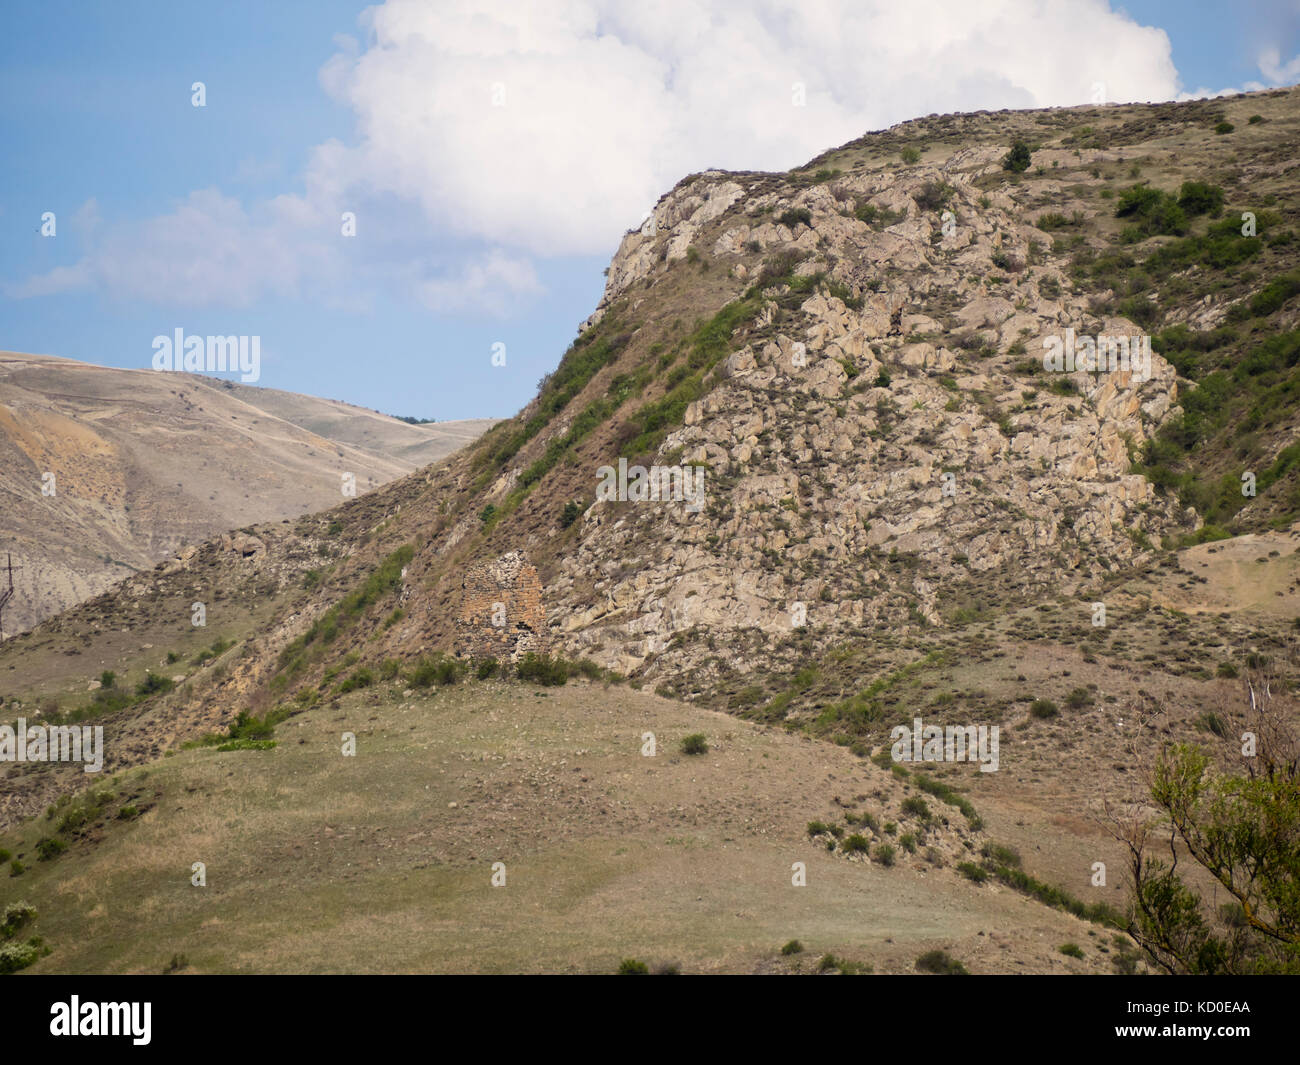 Springtime in the Lesser Caucasus area of Georgia near the Khertvisi Fortress, hilltop ruin and bare mountainsides - Stock Image